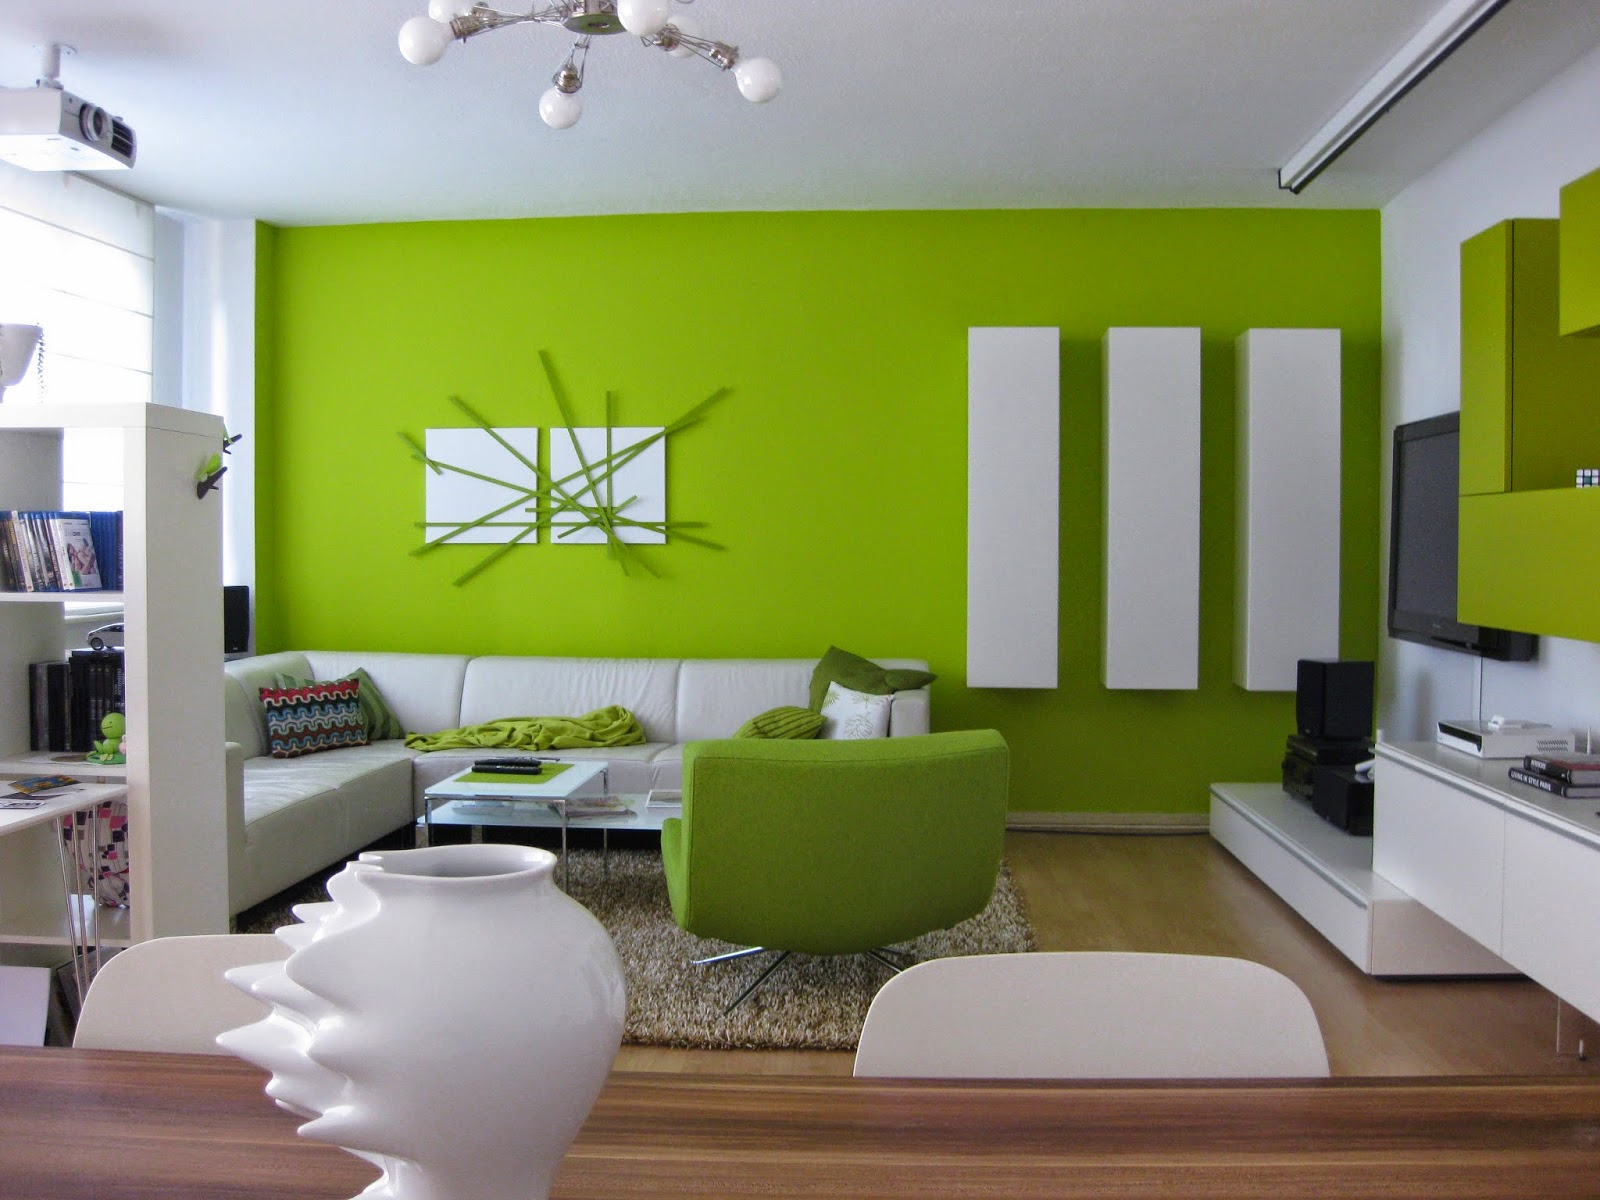 Fotos de sala en color verde salas con estilo - Tendencias en colores para interiores 2015 ...